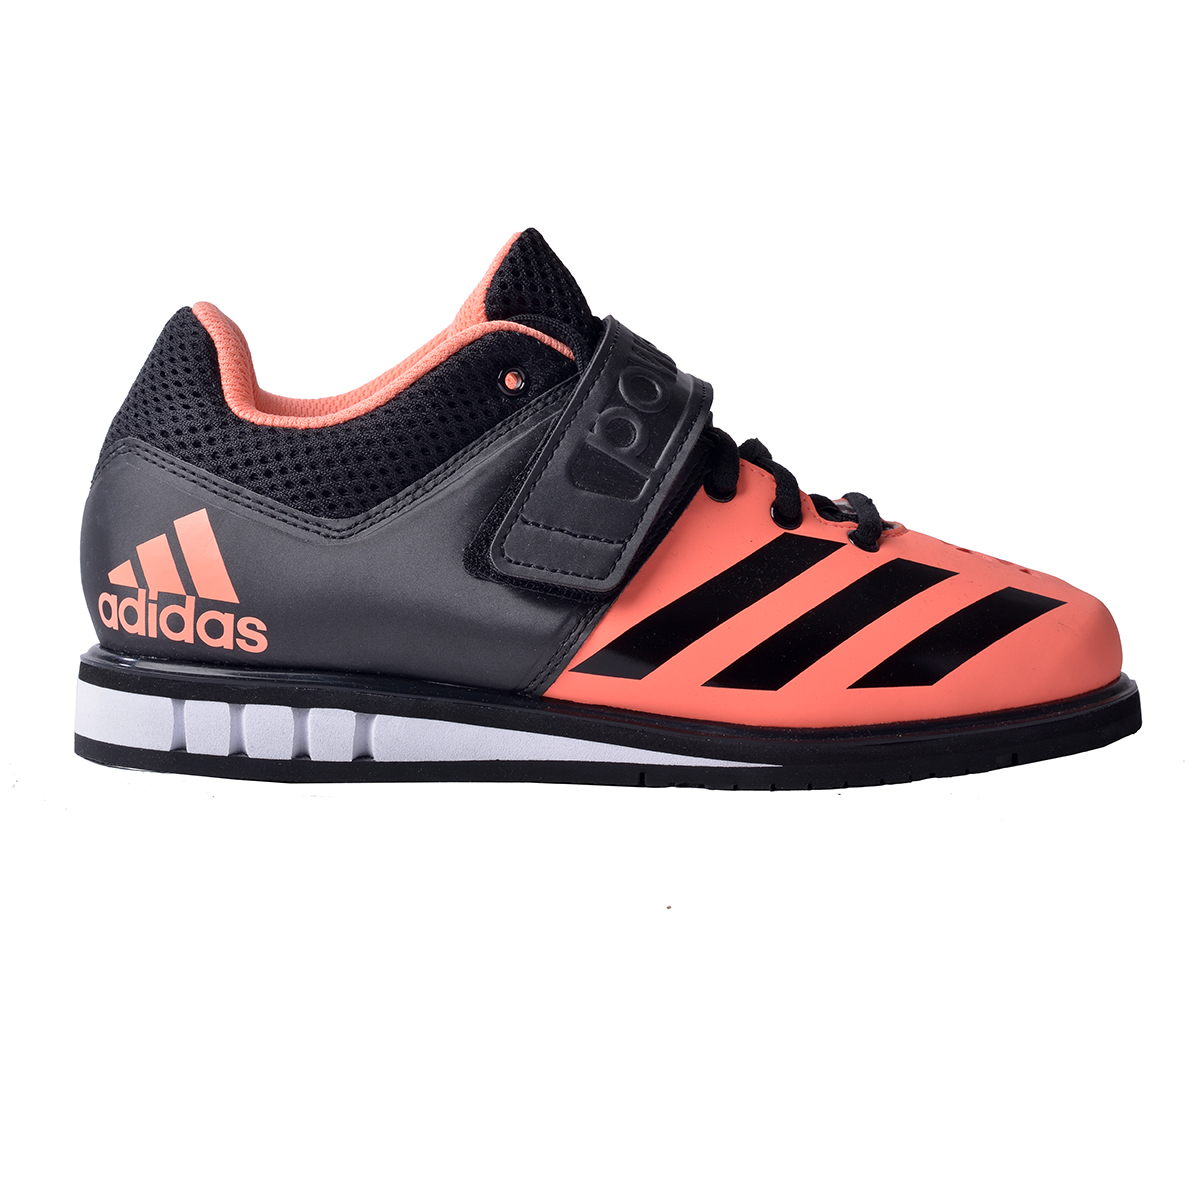 Adidas bodybuilding shoes : What to see in seattle wa